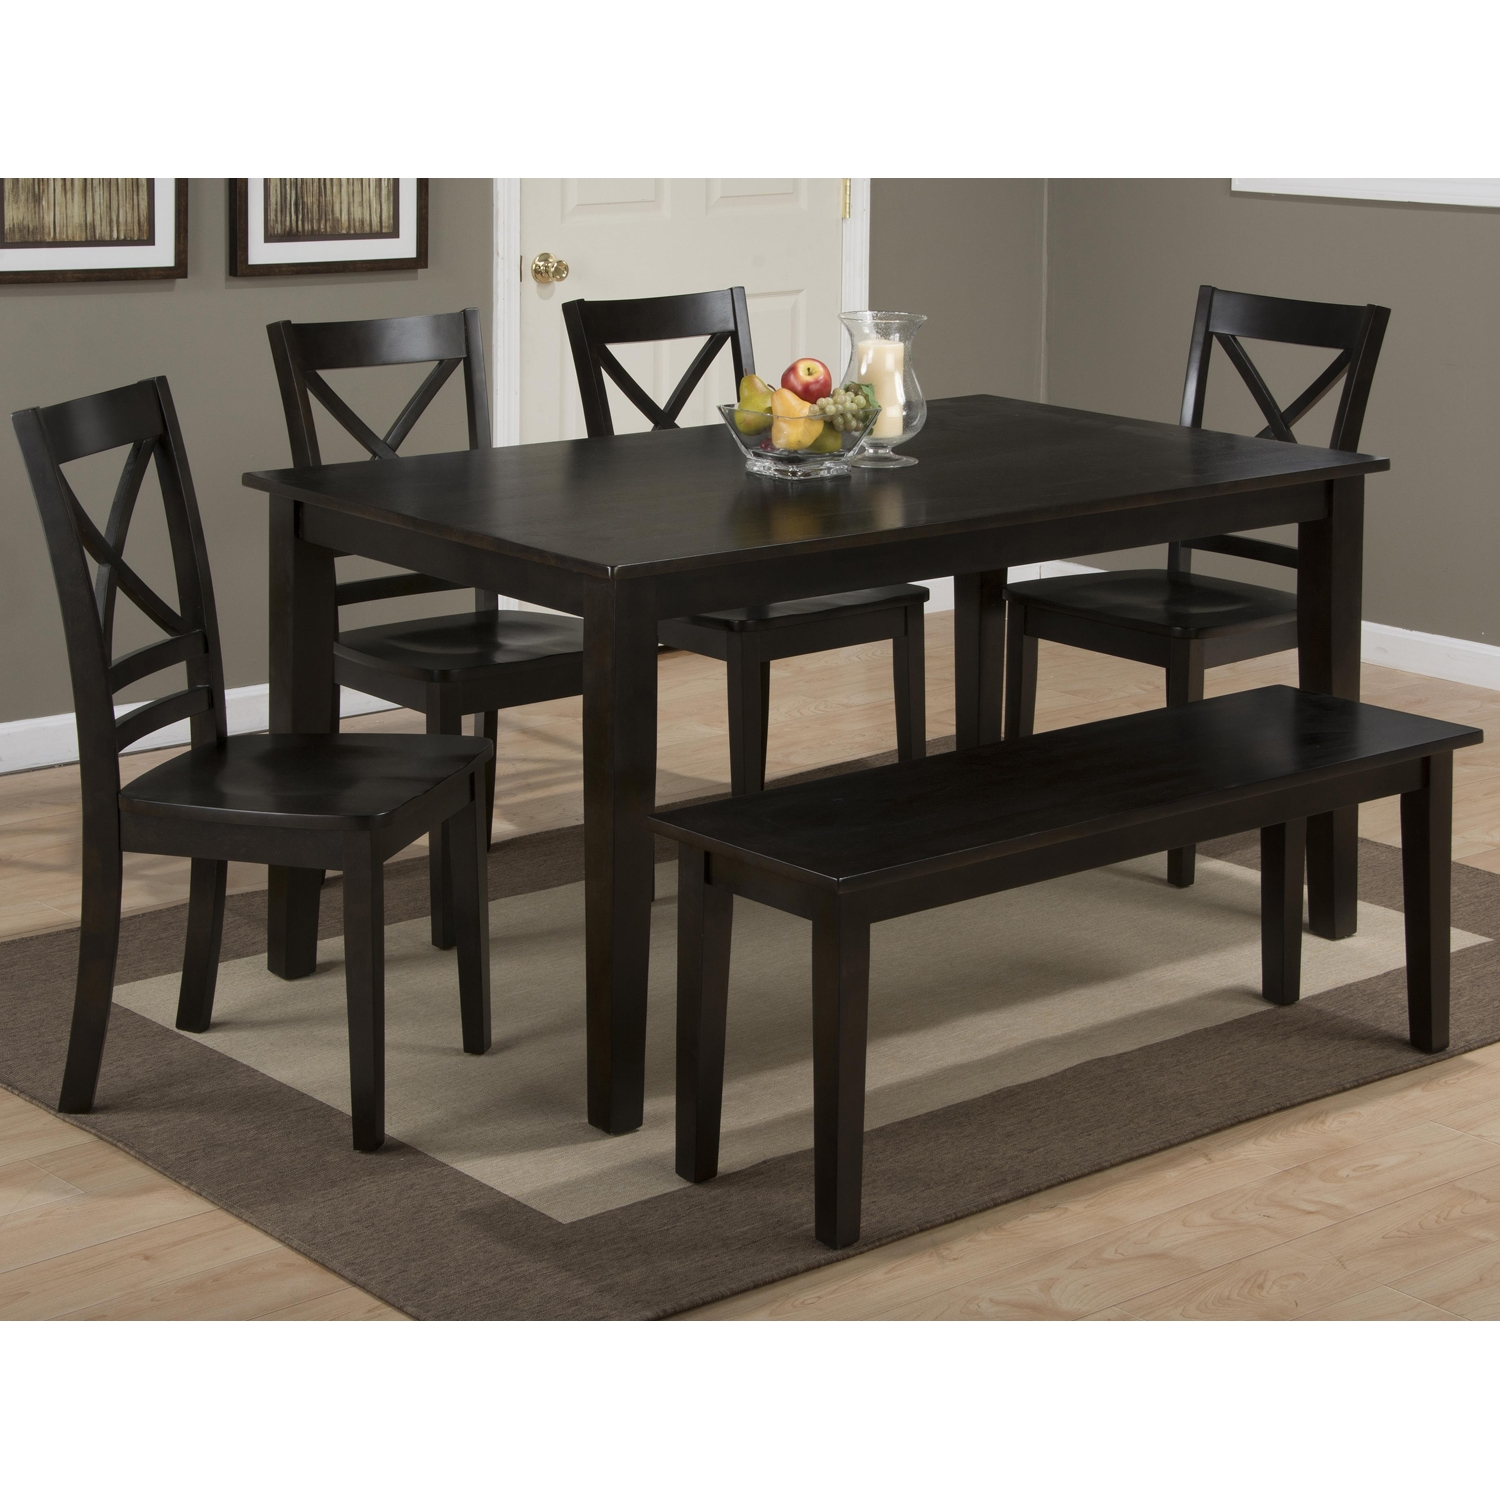 Simplicity 5 Pieces Dining Set - X Back Chairs, Rectangle Table, Espresso - JOFR-552-60-806KD-SET